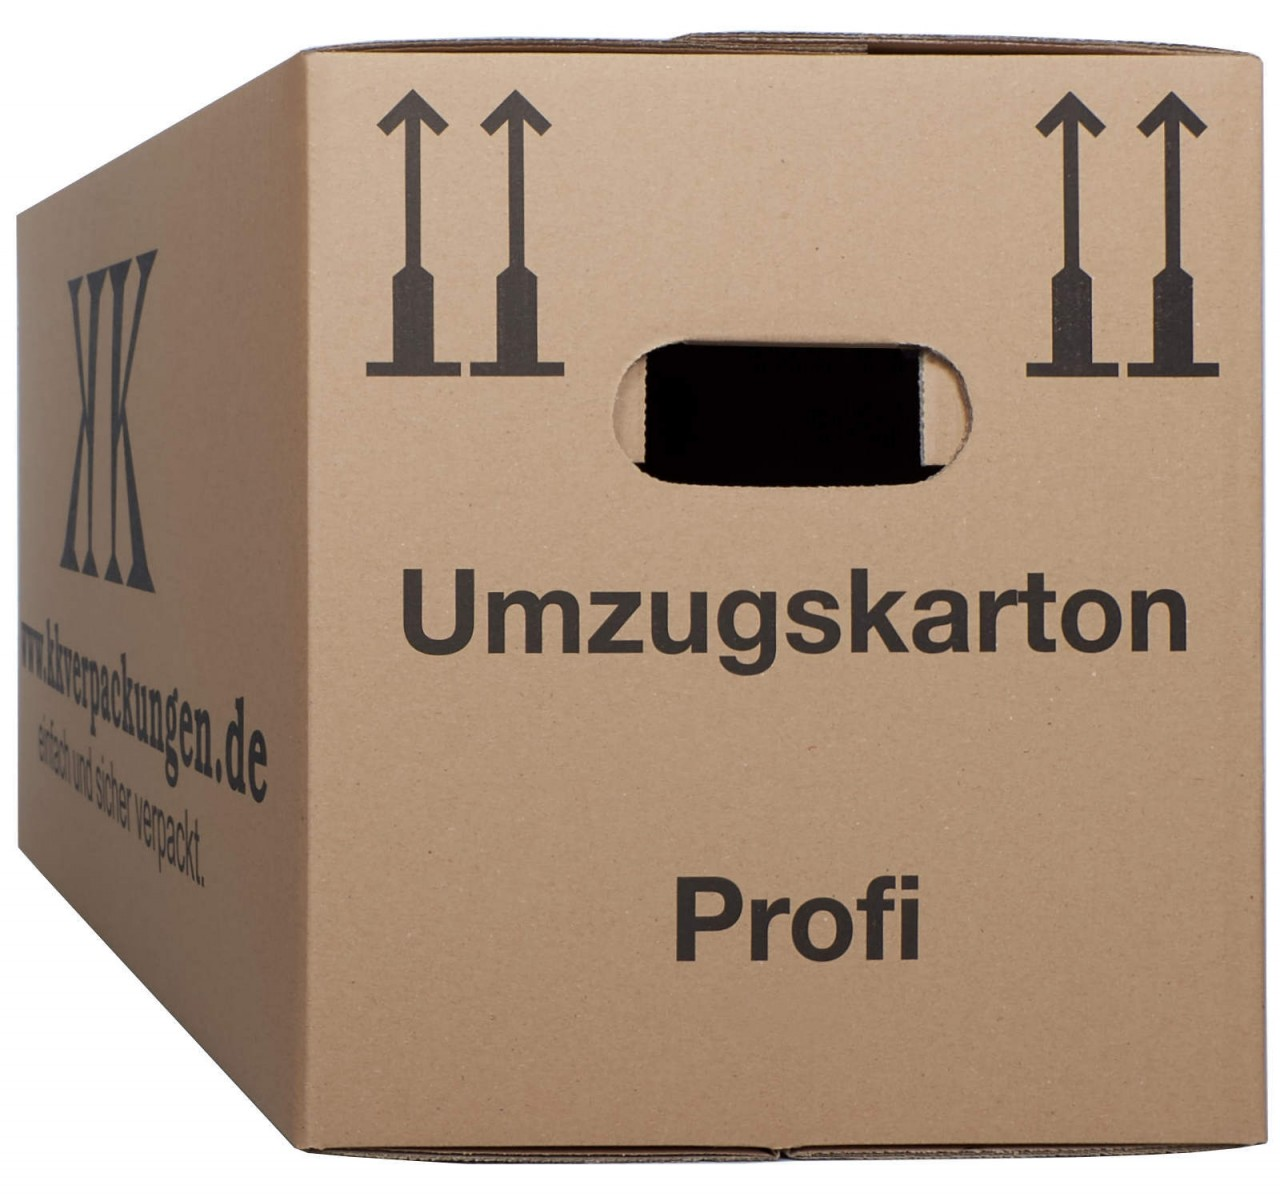 umzugskarton umzugkartons profiware kk verpackungen. Black Bedroom Furniture Sets. Home Design Ideas